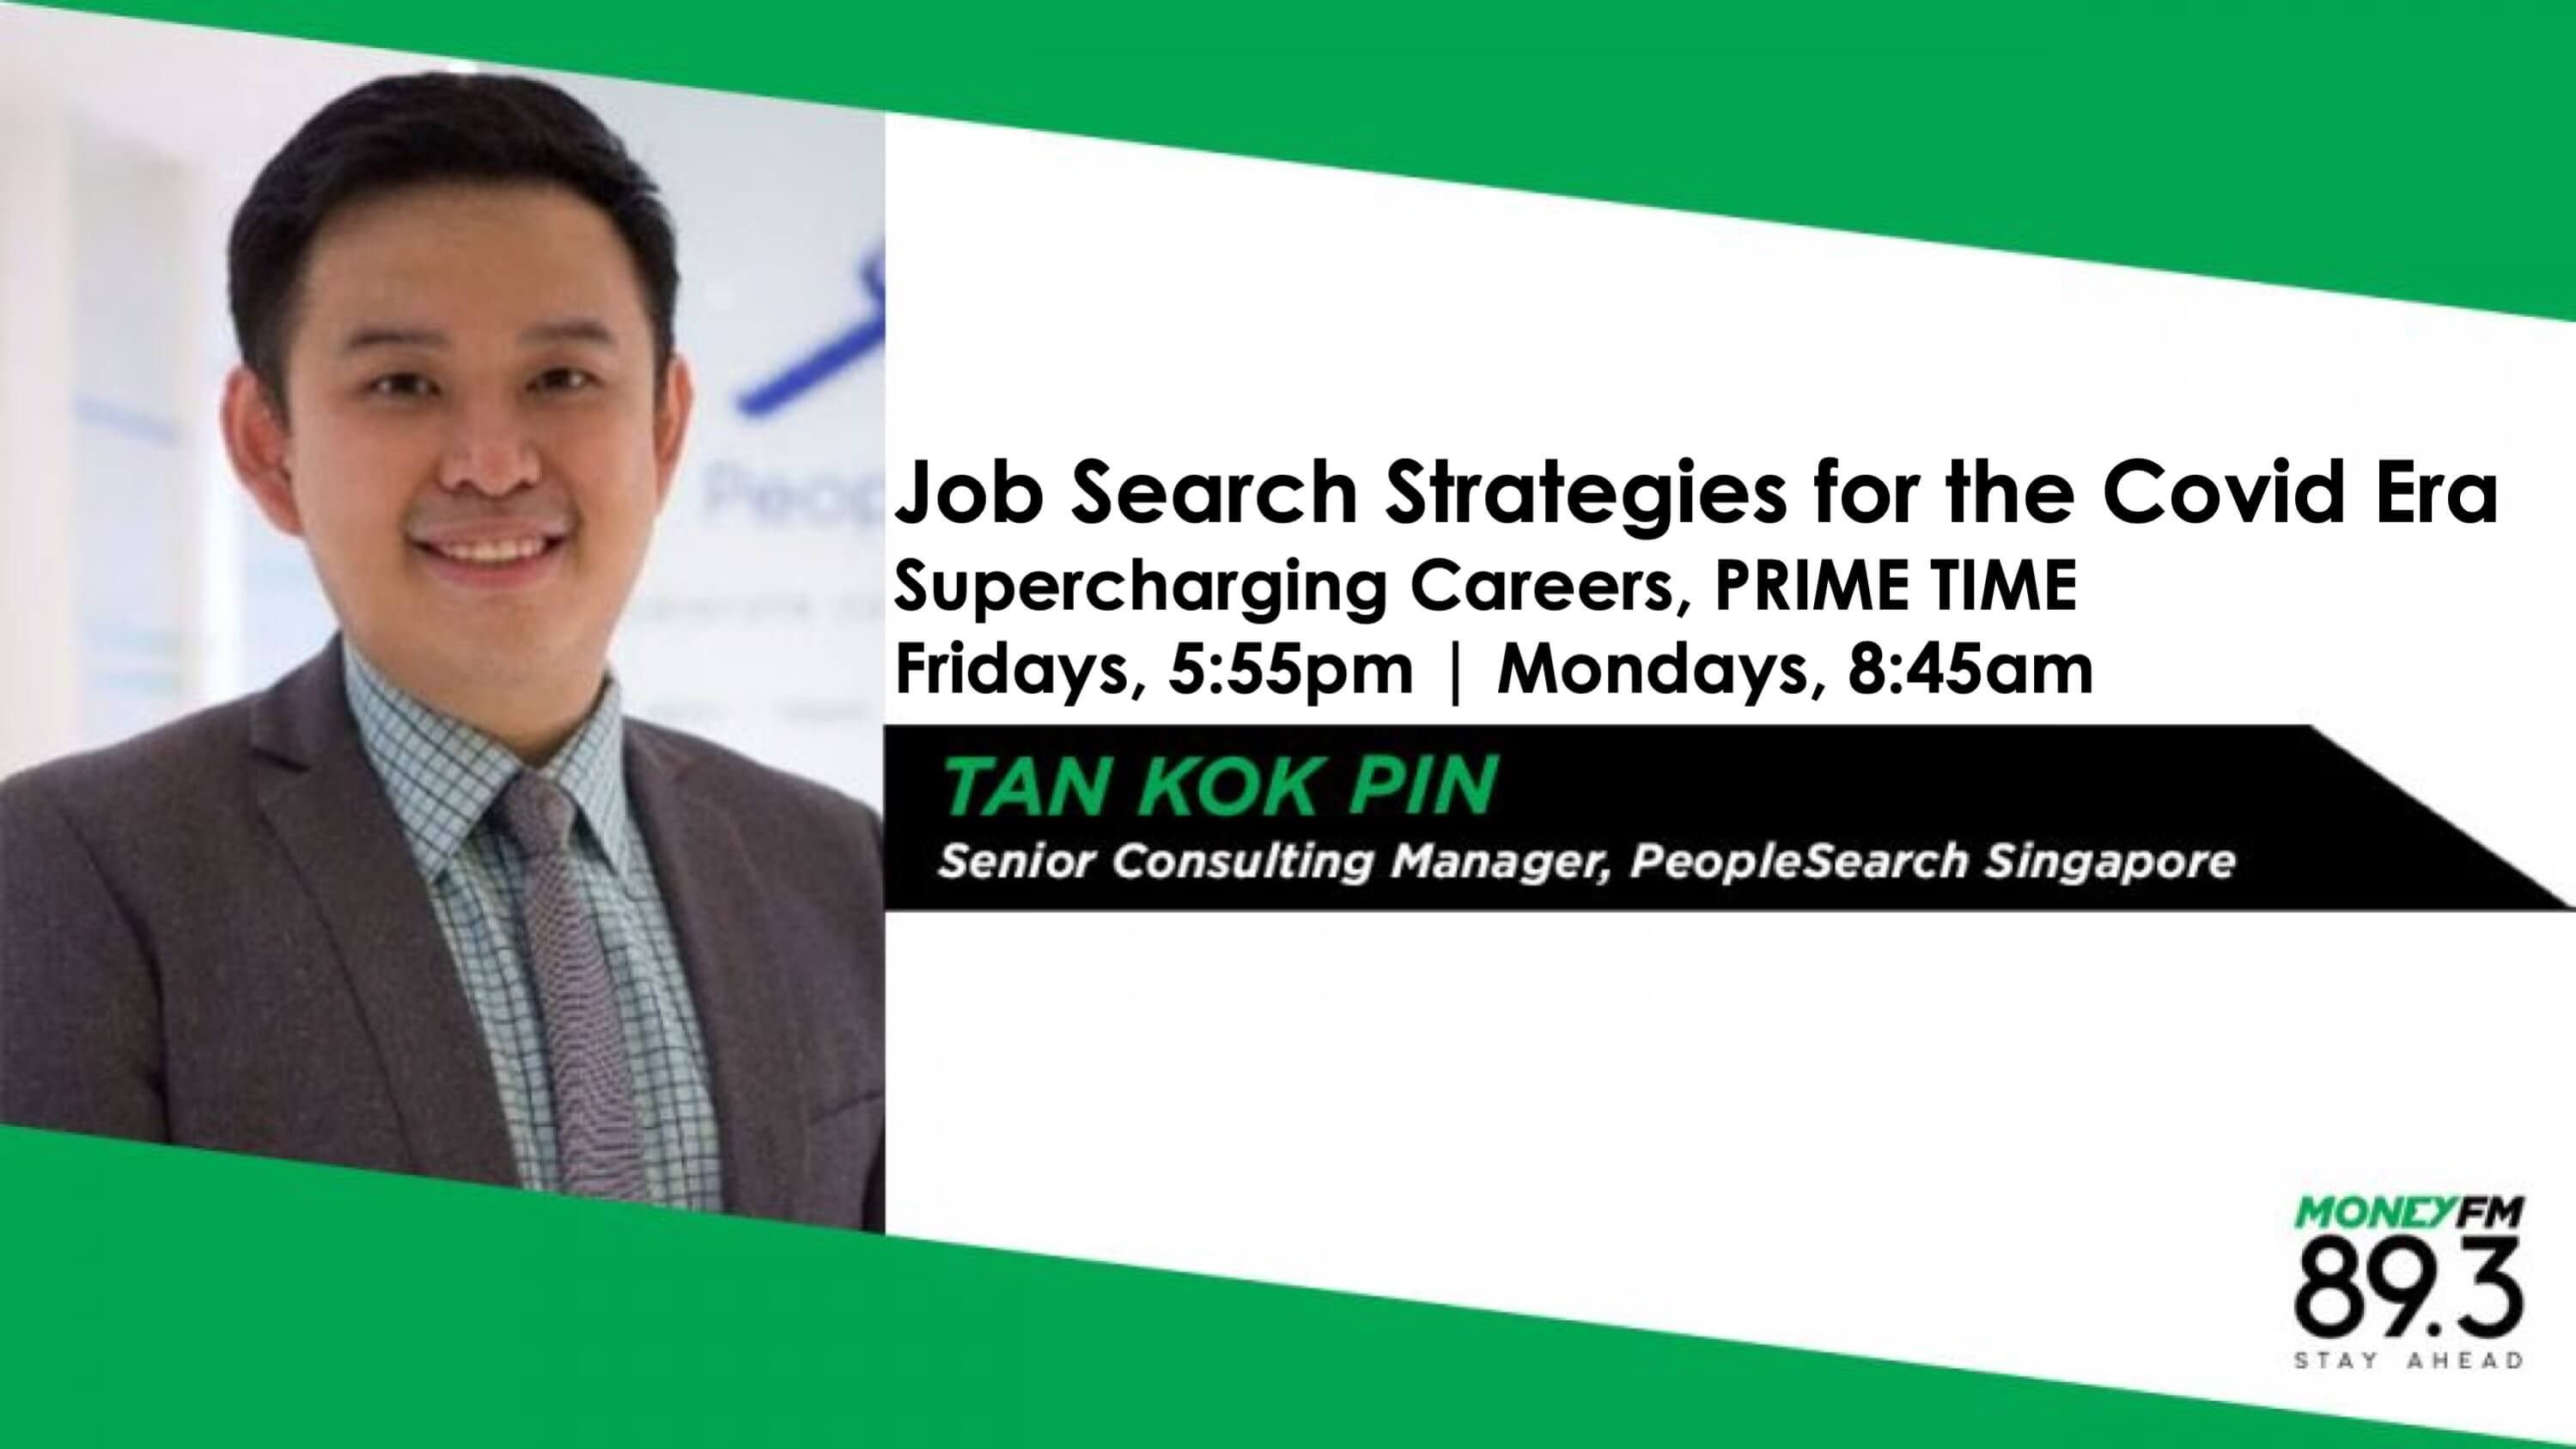 Asian man in a dark blazer and checked shirt and tie on radio station, MONEY FM 89.3's Supercharging Careers banner